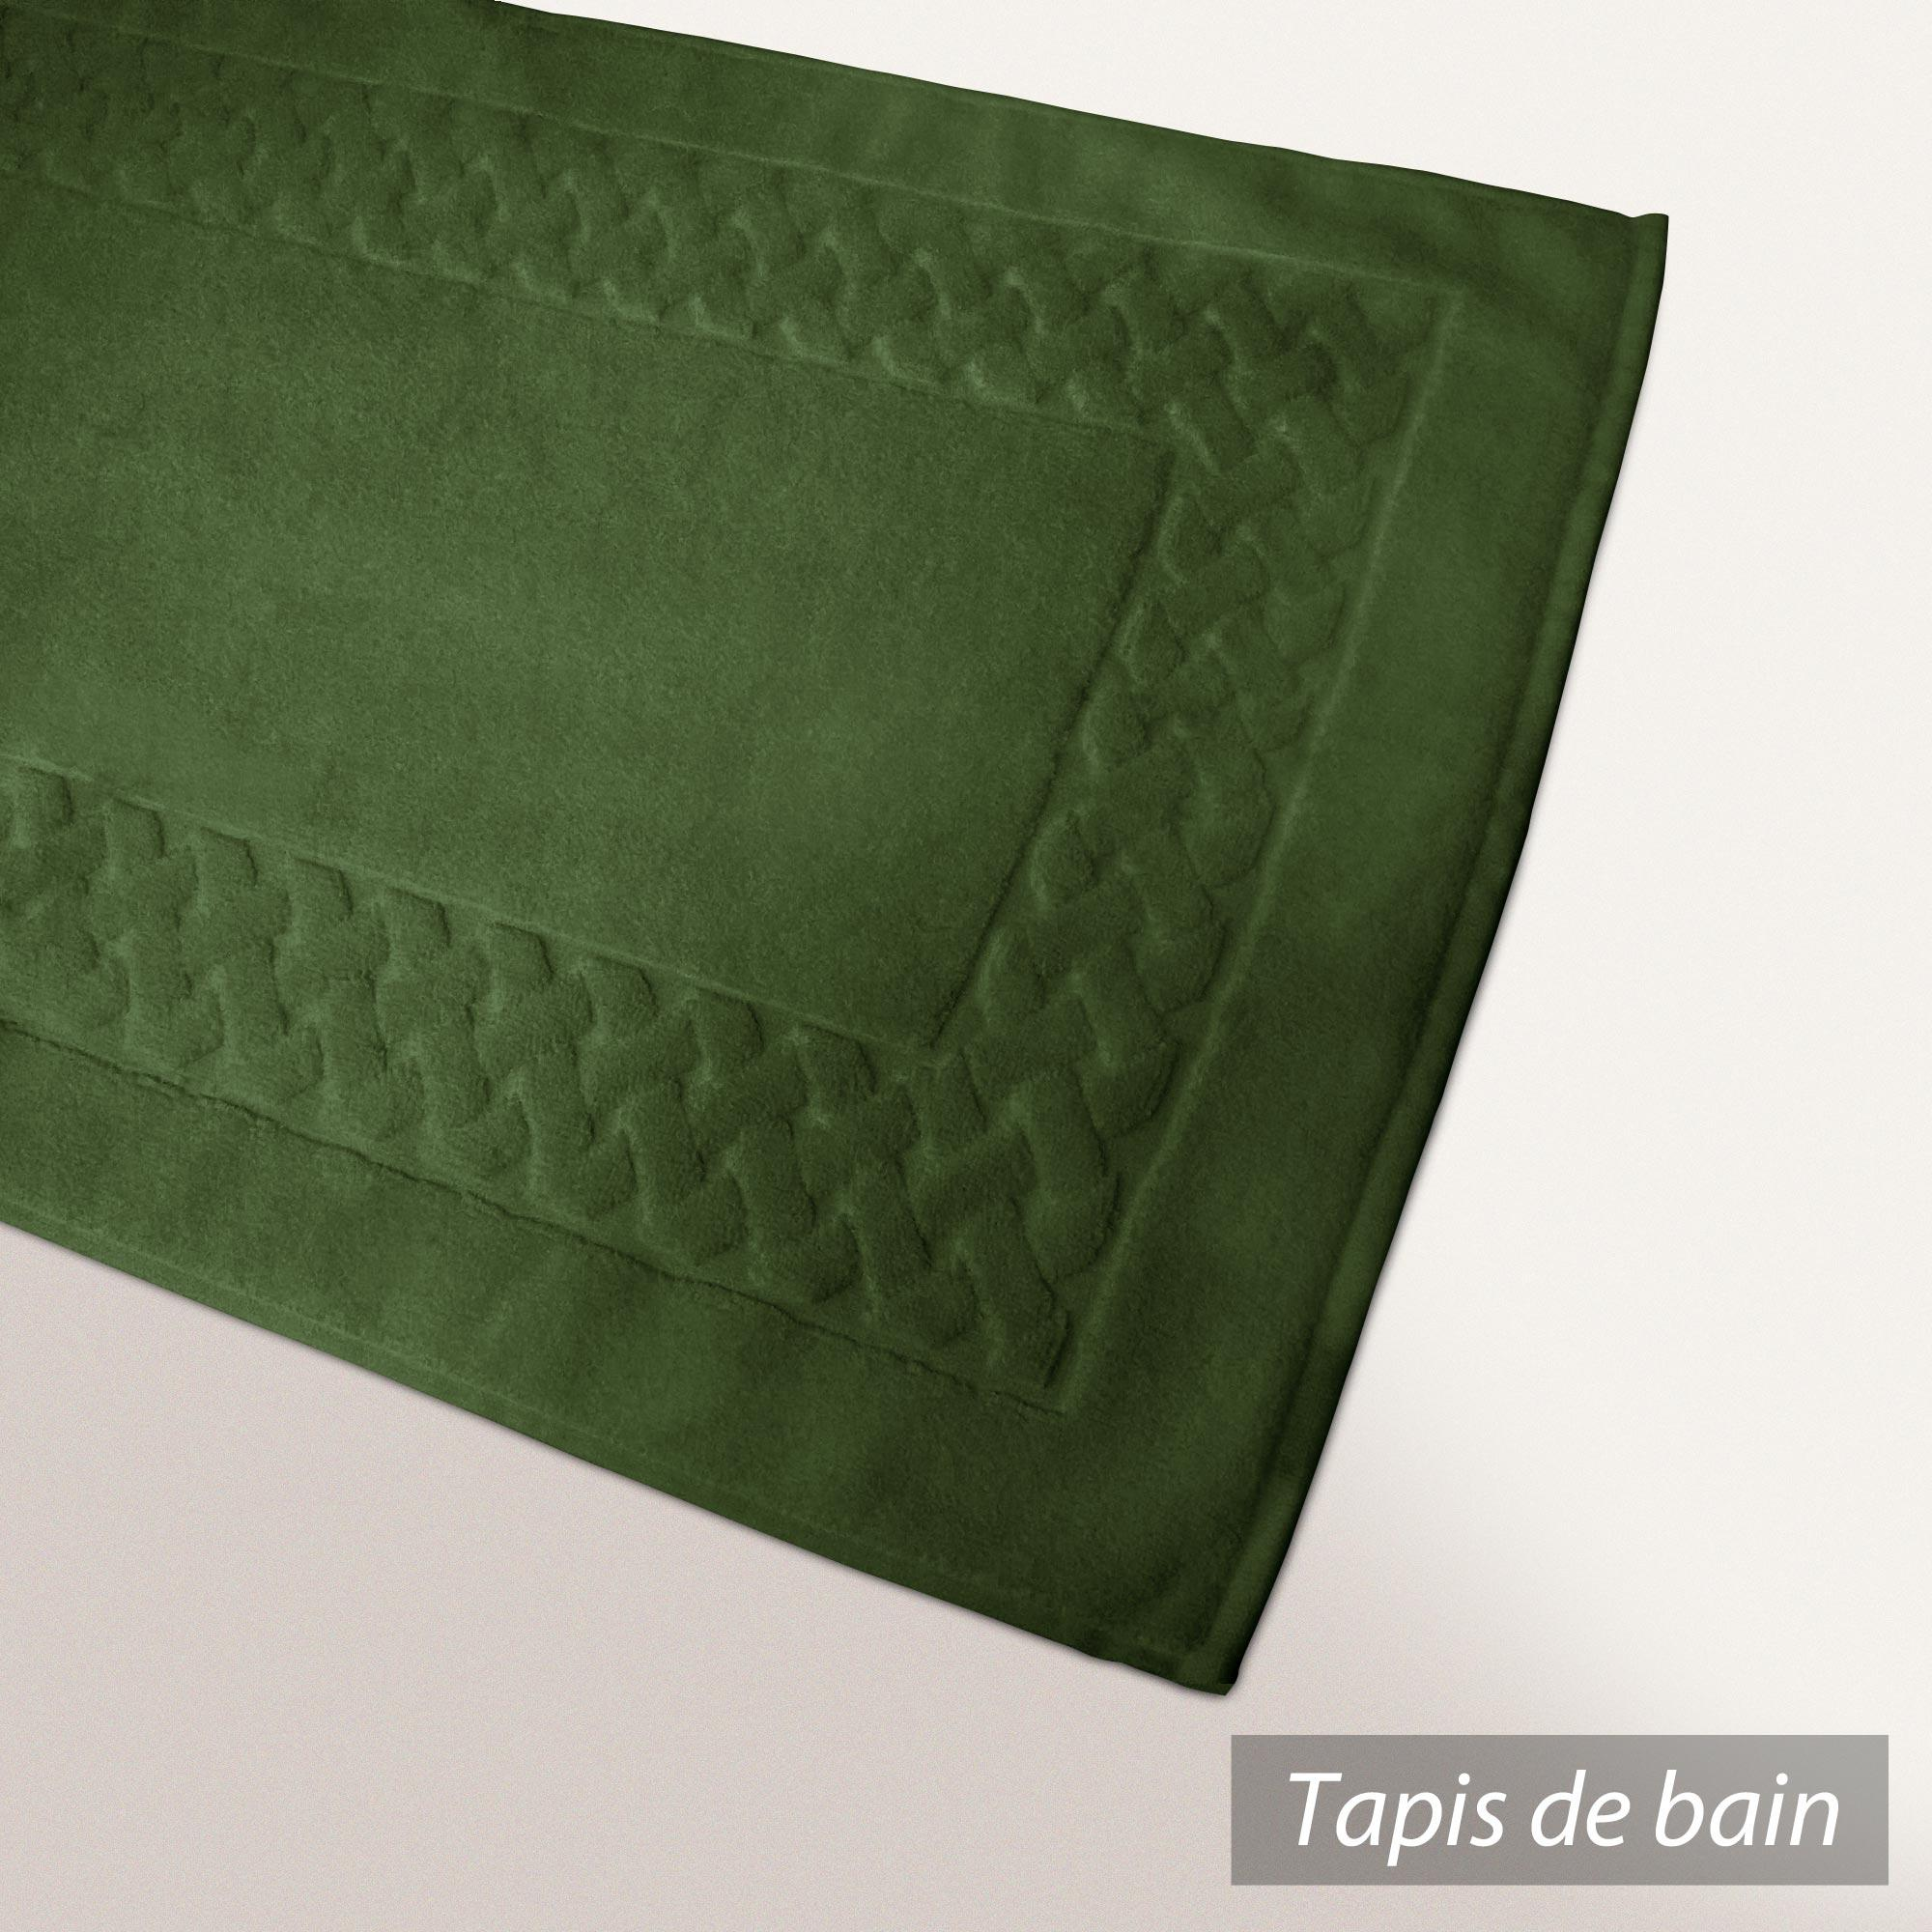 tapis de bain vert tapis salle de bain chenille vert anis. Black Bedroom Furniture Sets. Home Design Ideas